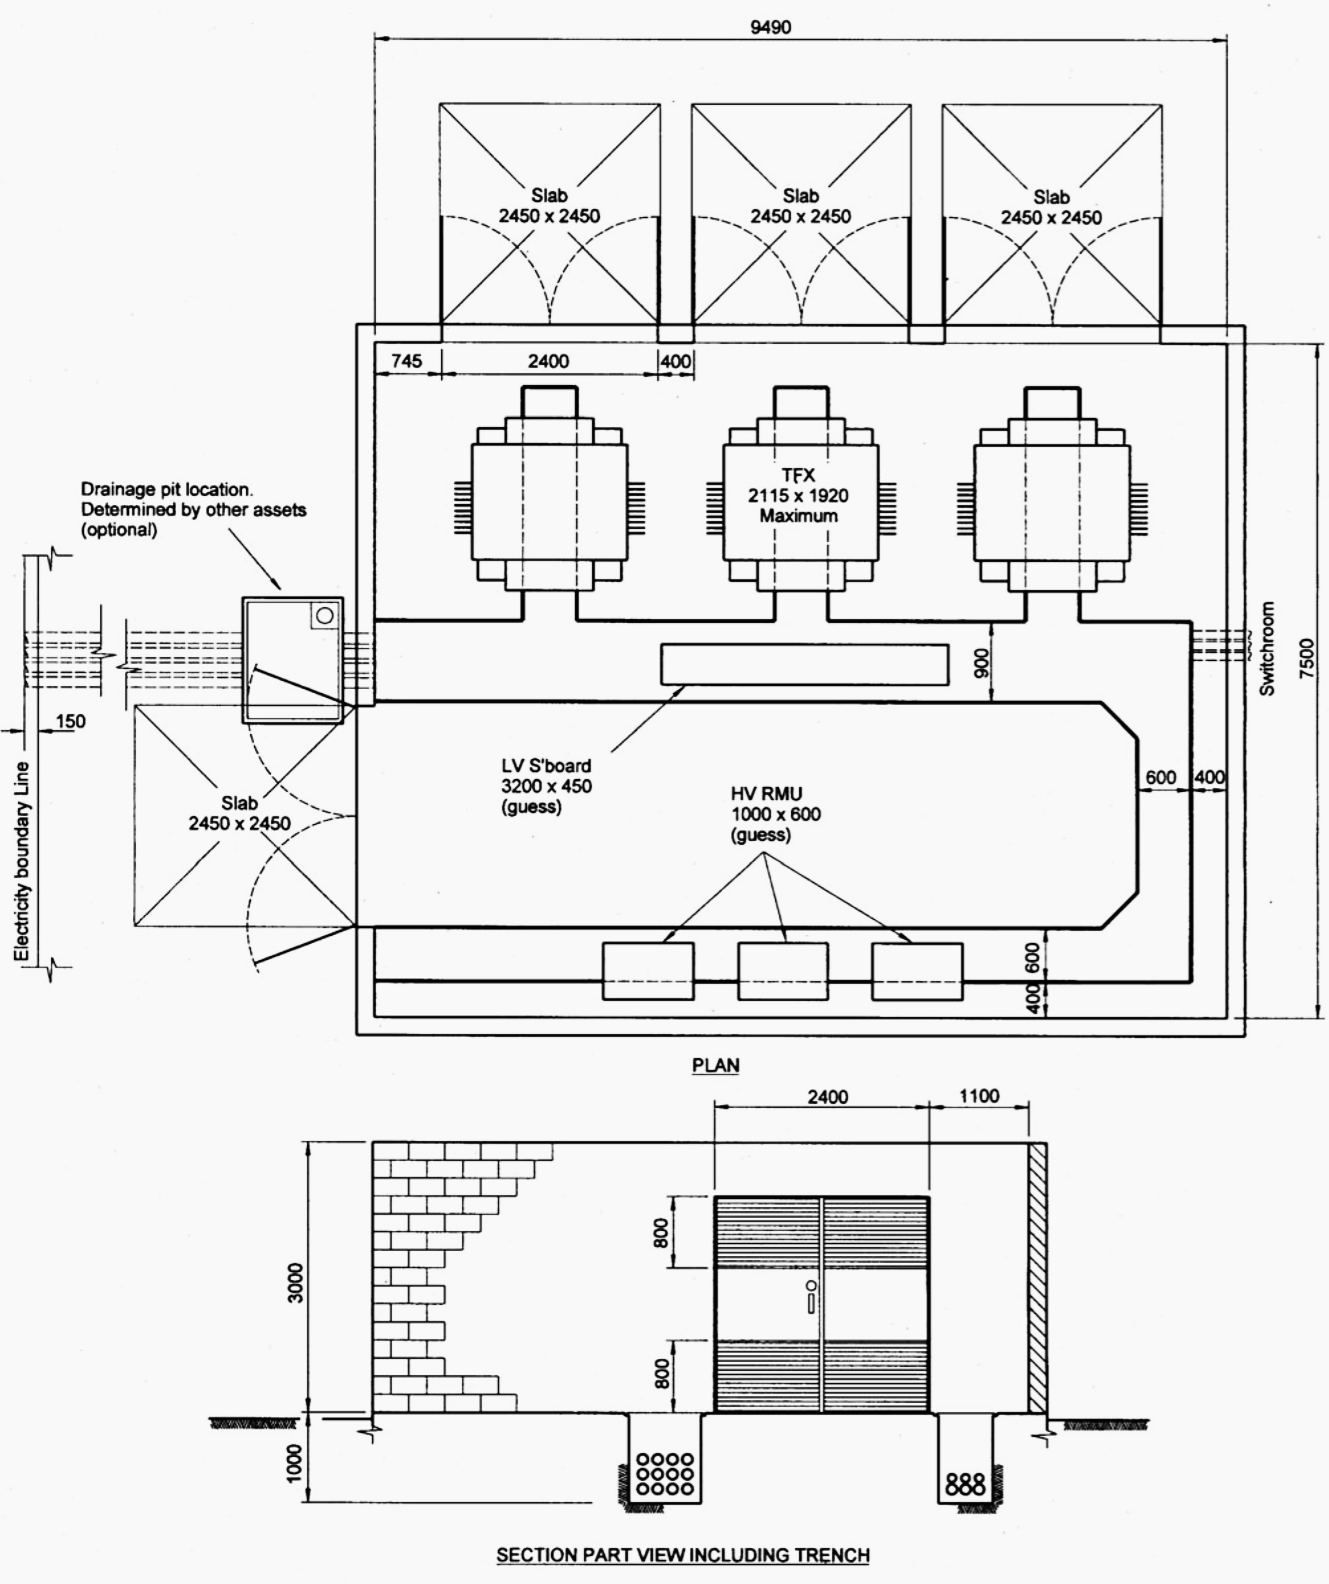 medium resolution of indoor distribution substation layout with 3 transformers emf containment and more than 1 external wall